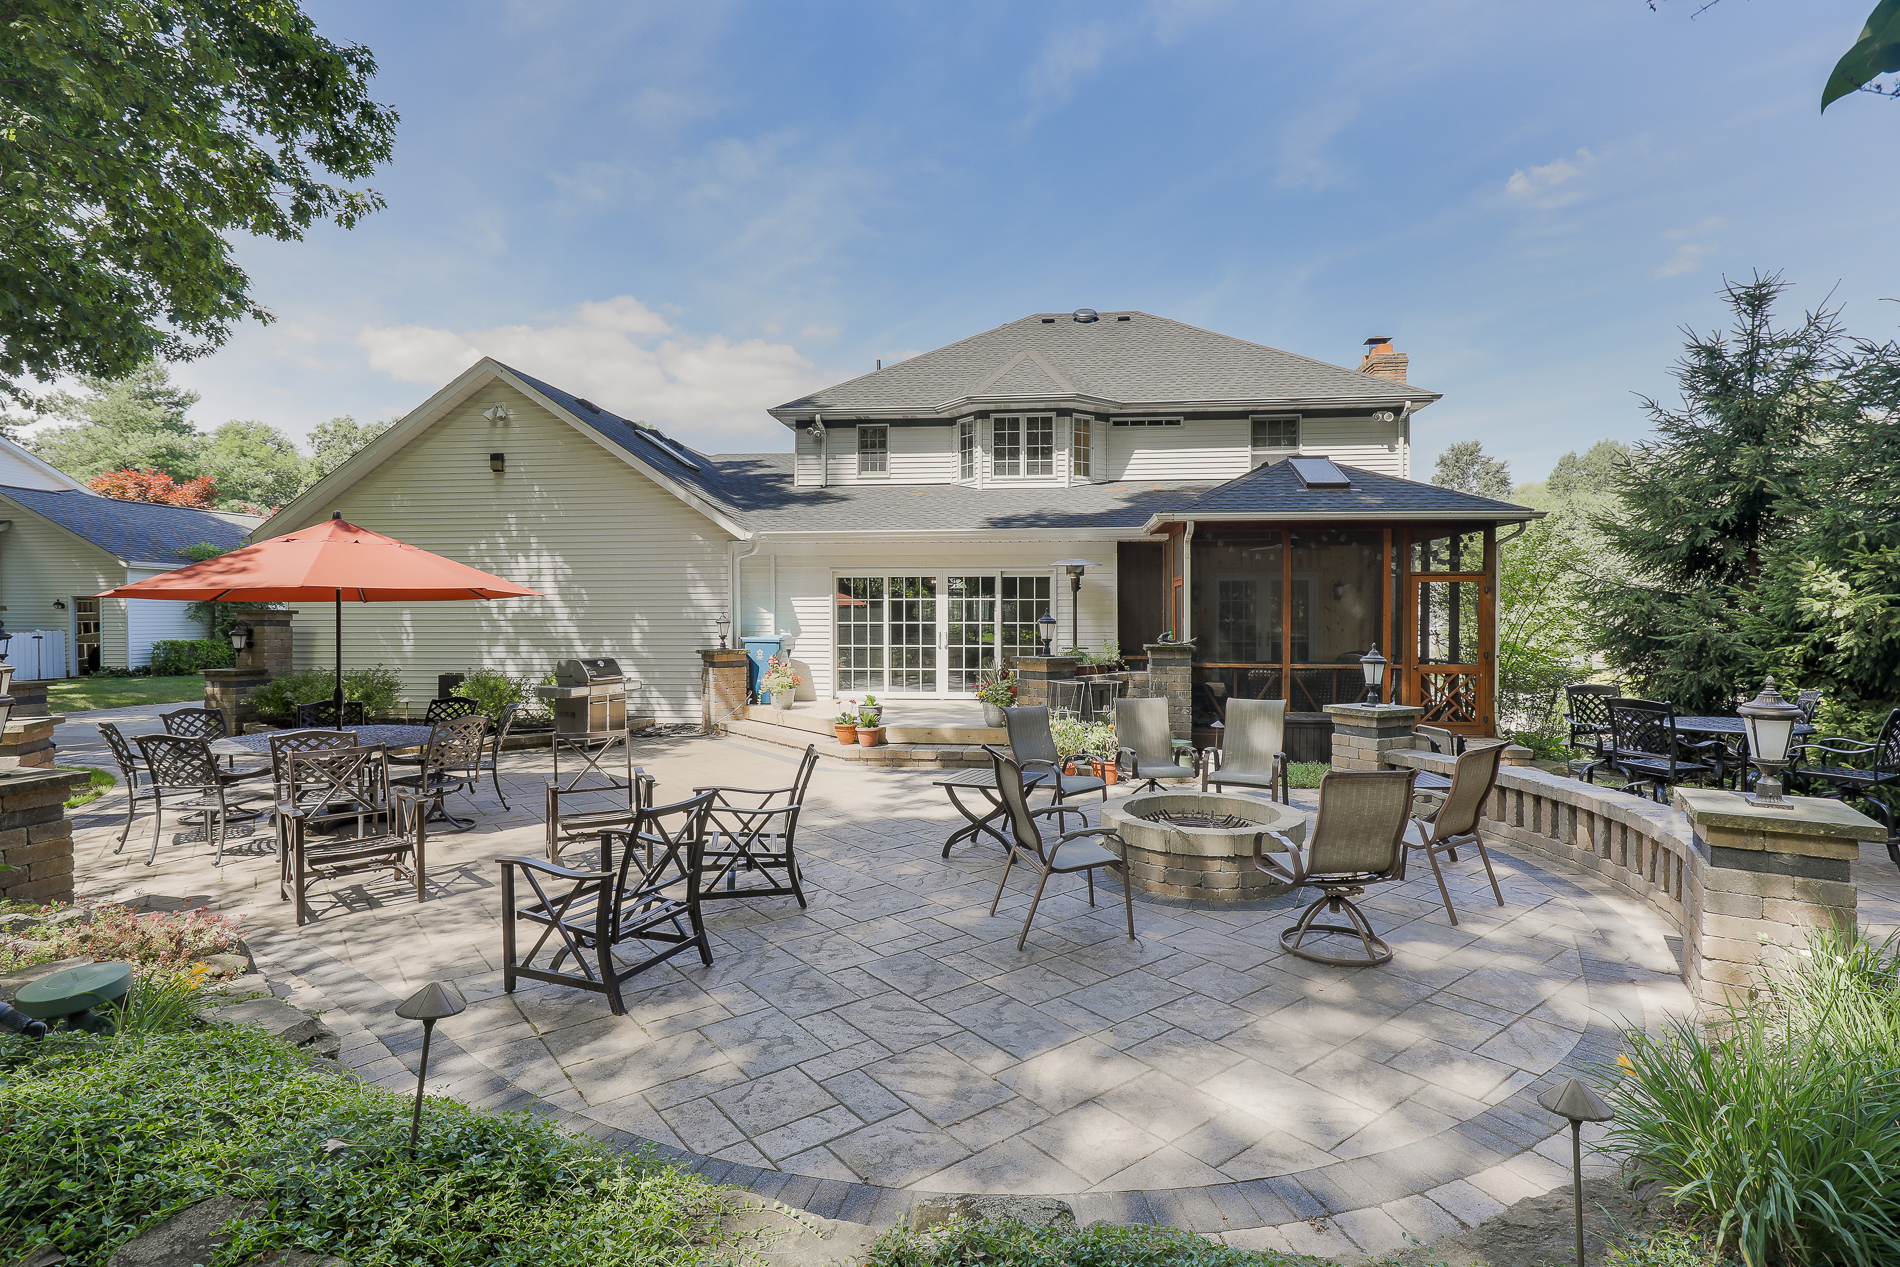 Alair-Homes-Cuyahoga-Falls-Making-Multigenerational-Living-a-Success-in-your-home-Backyard-